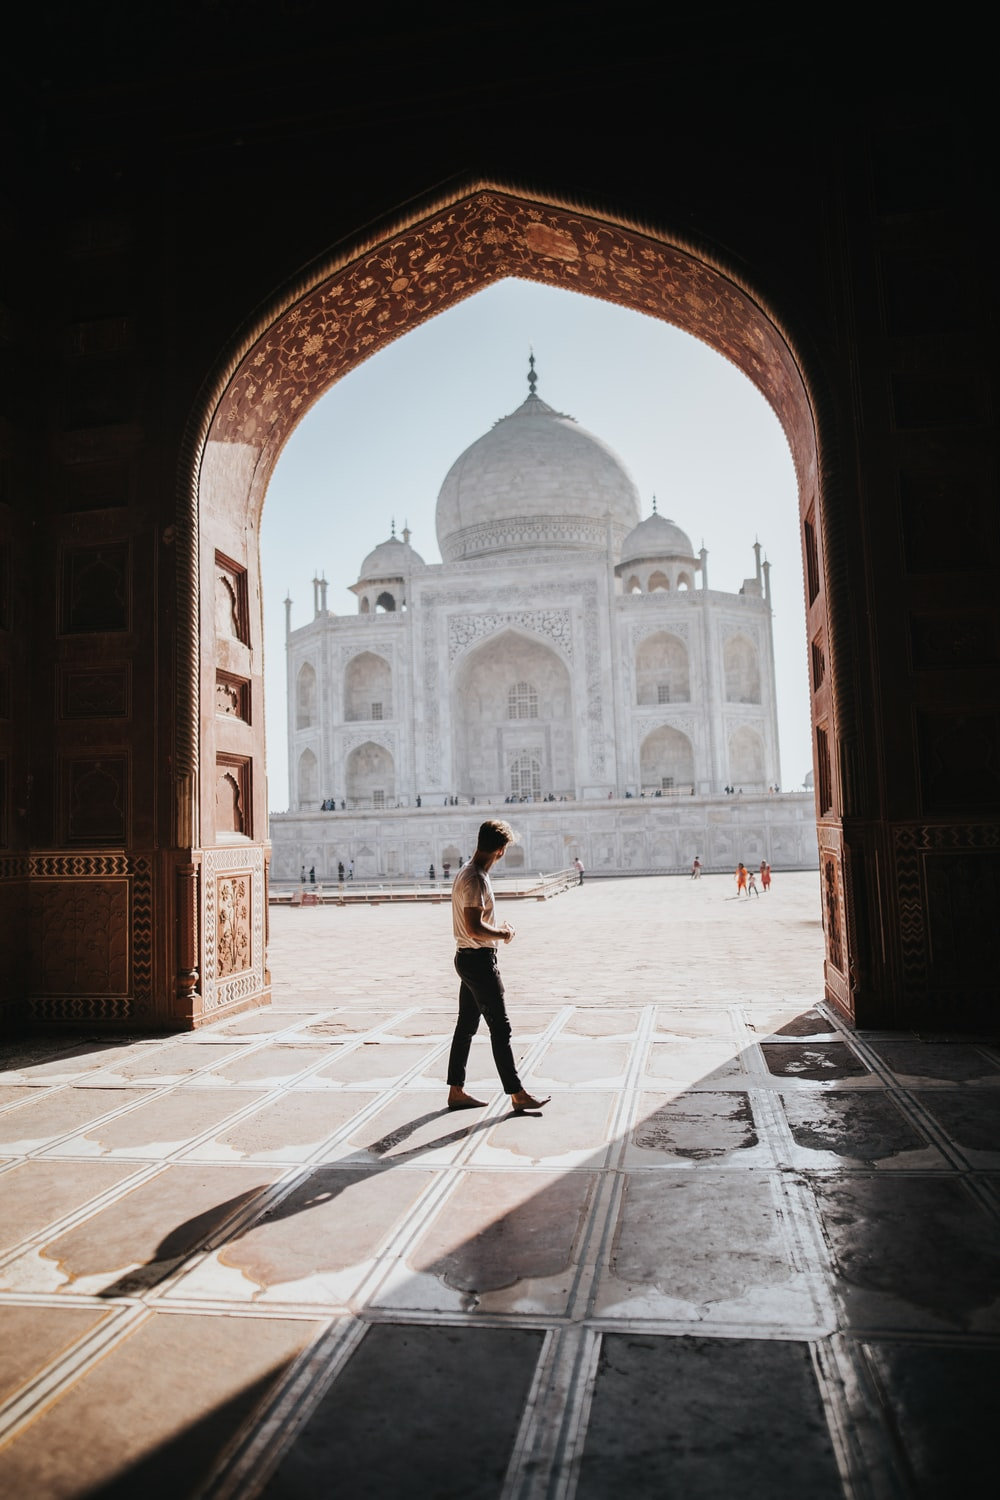 person standing inside building overlooking Taj Mahal at daytime